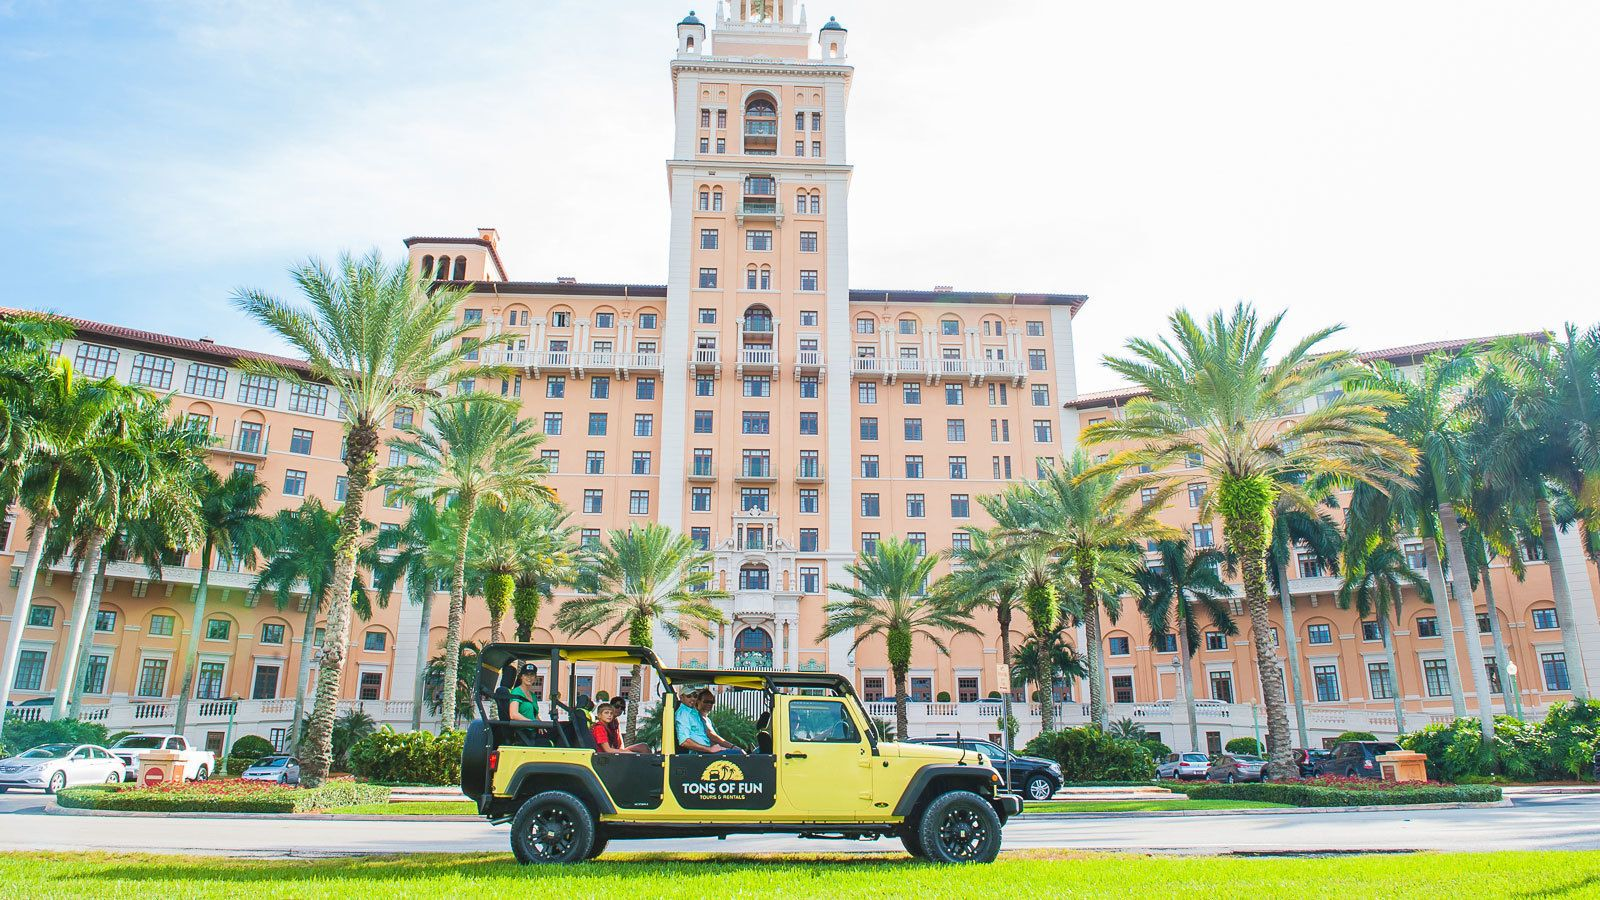 Open-aired Tons of Fun jeep parked in front of Miami City Hall